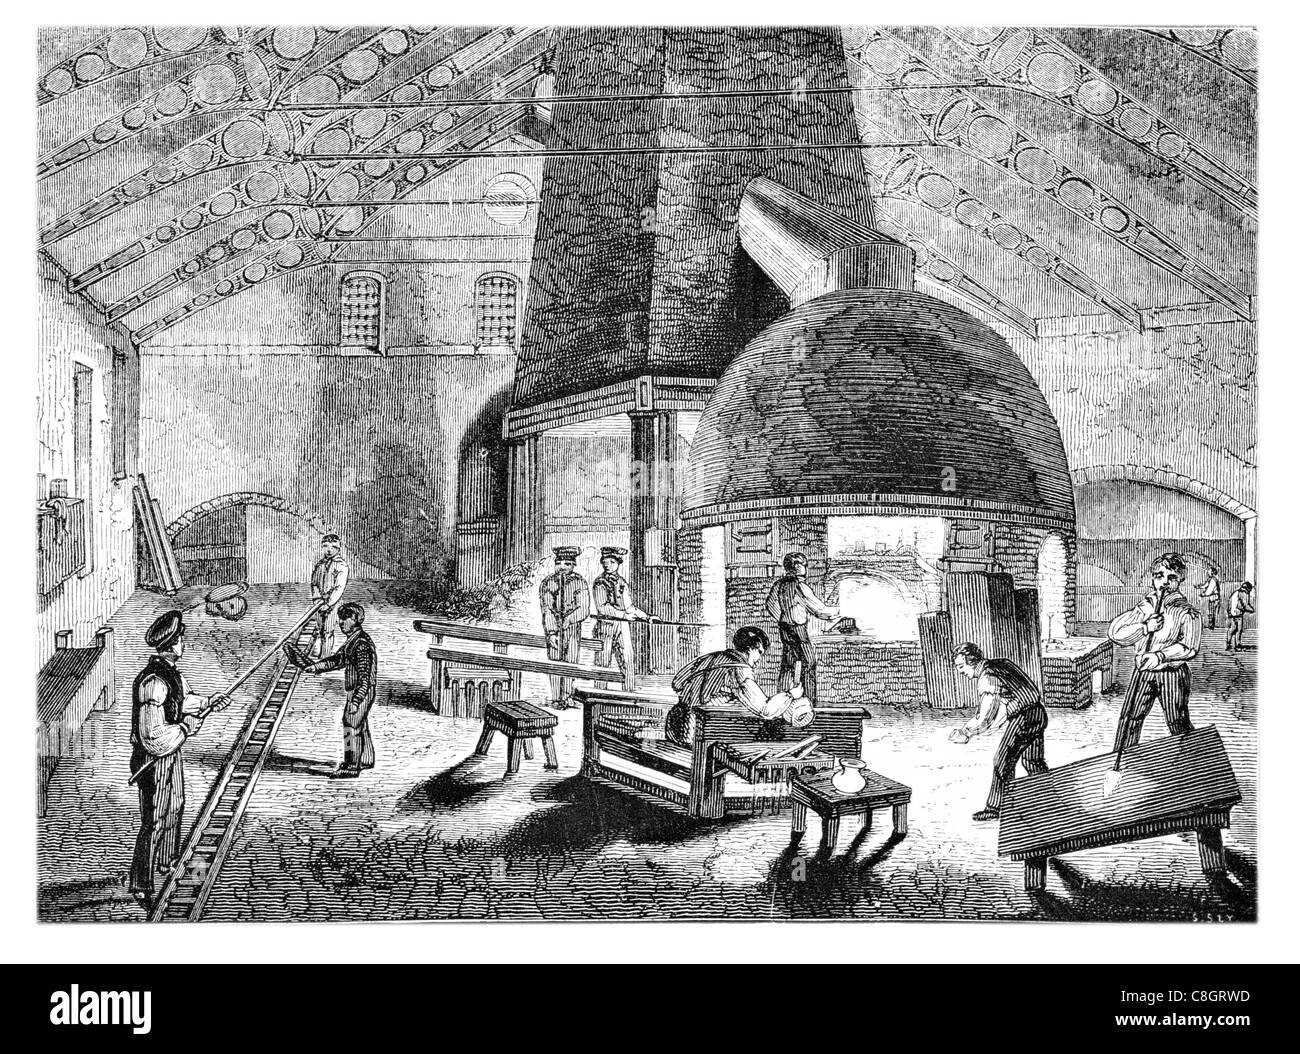 flint glass furnace Industrial Revolution industries industry factory manufacture construction workforce worker - Stock Image